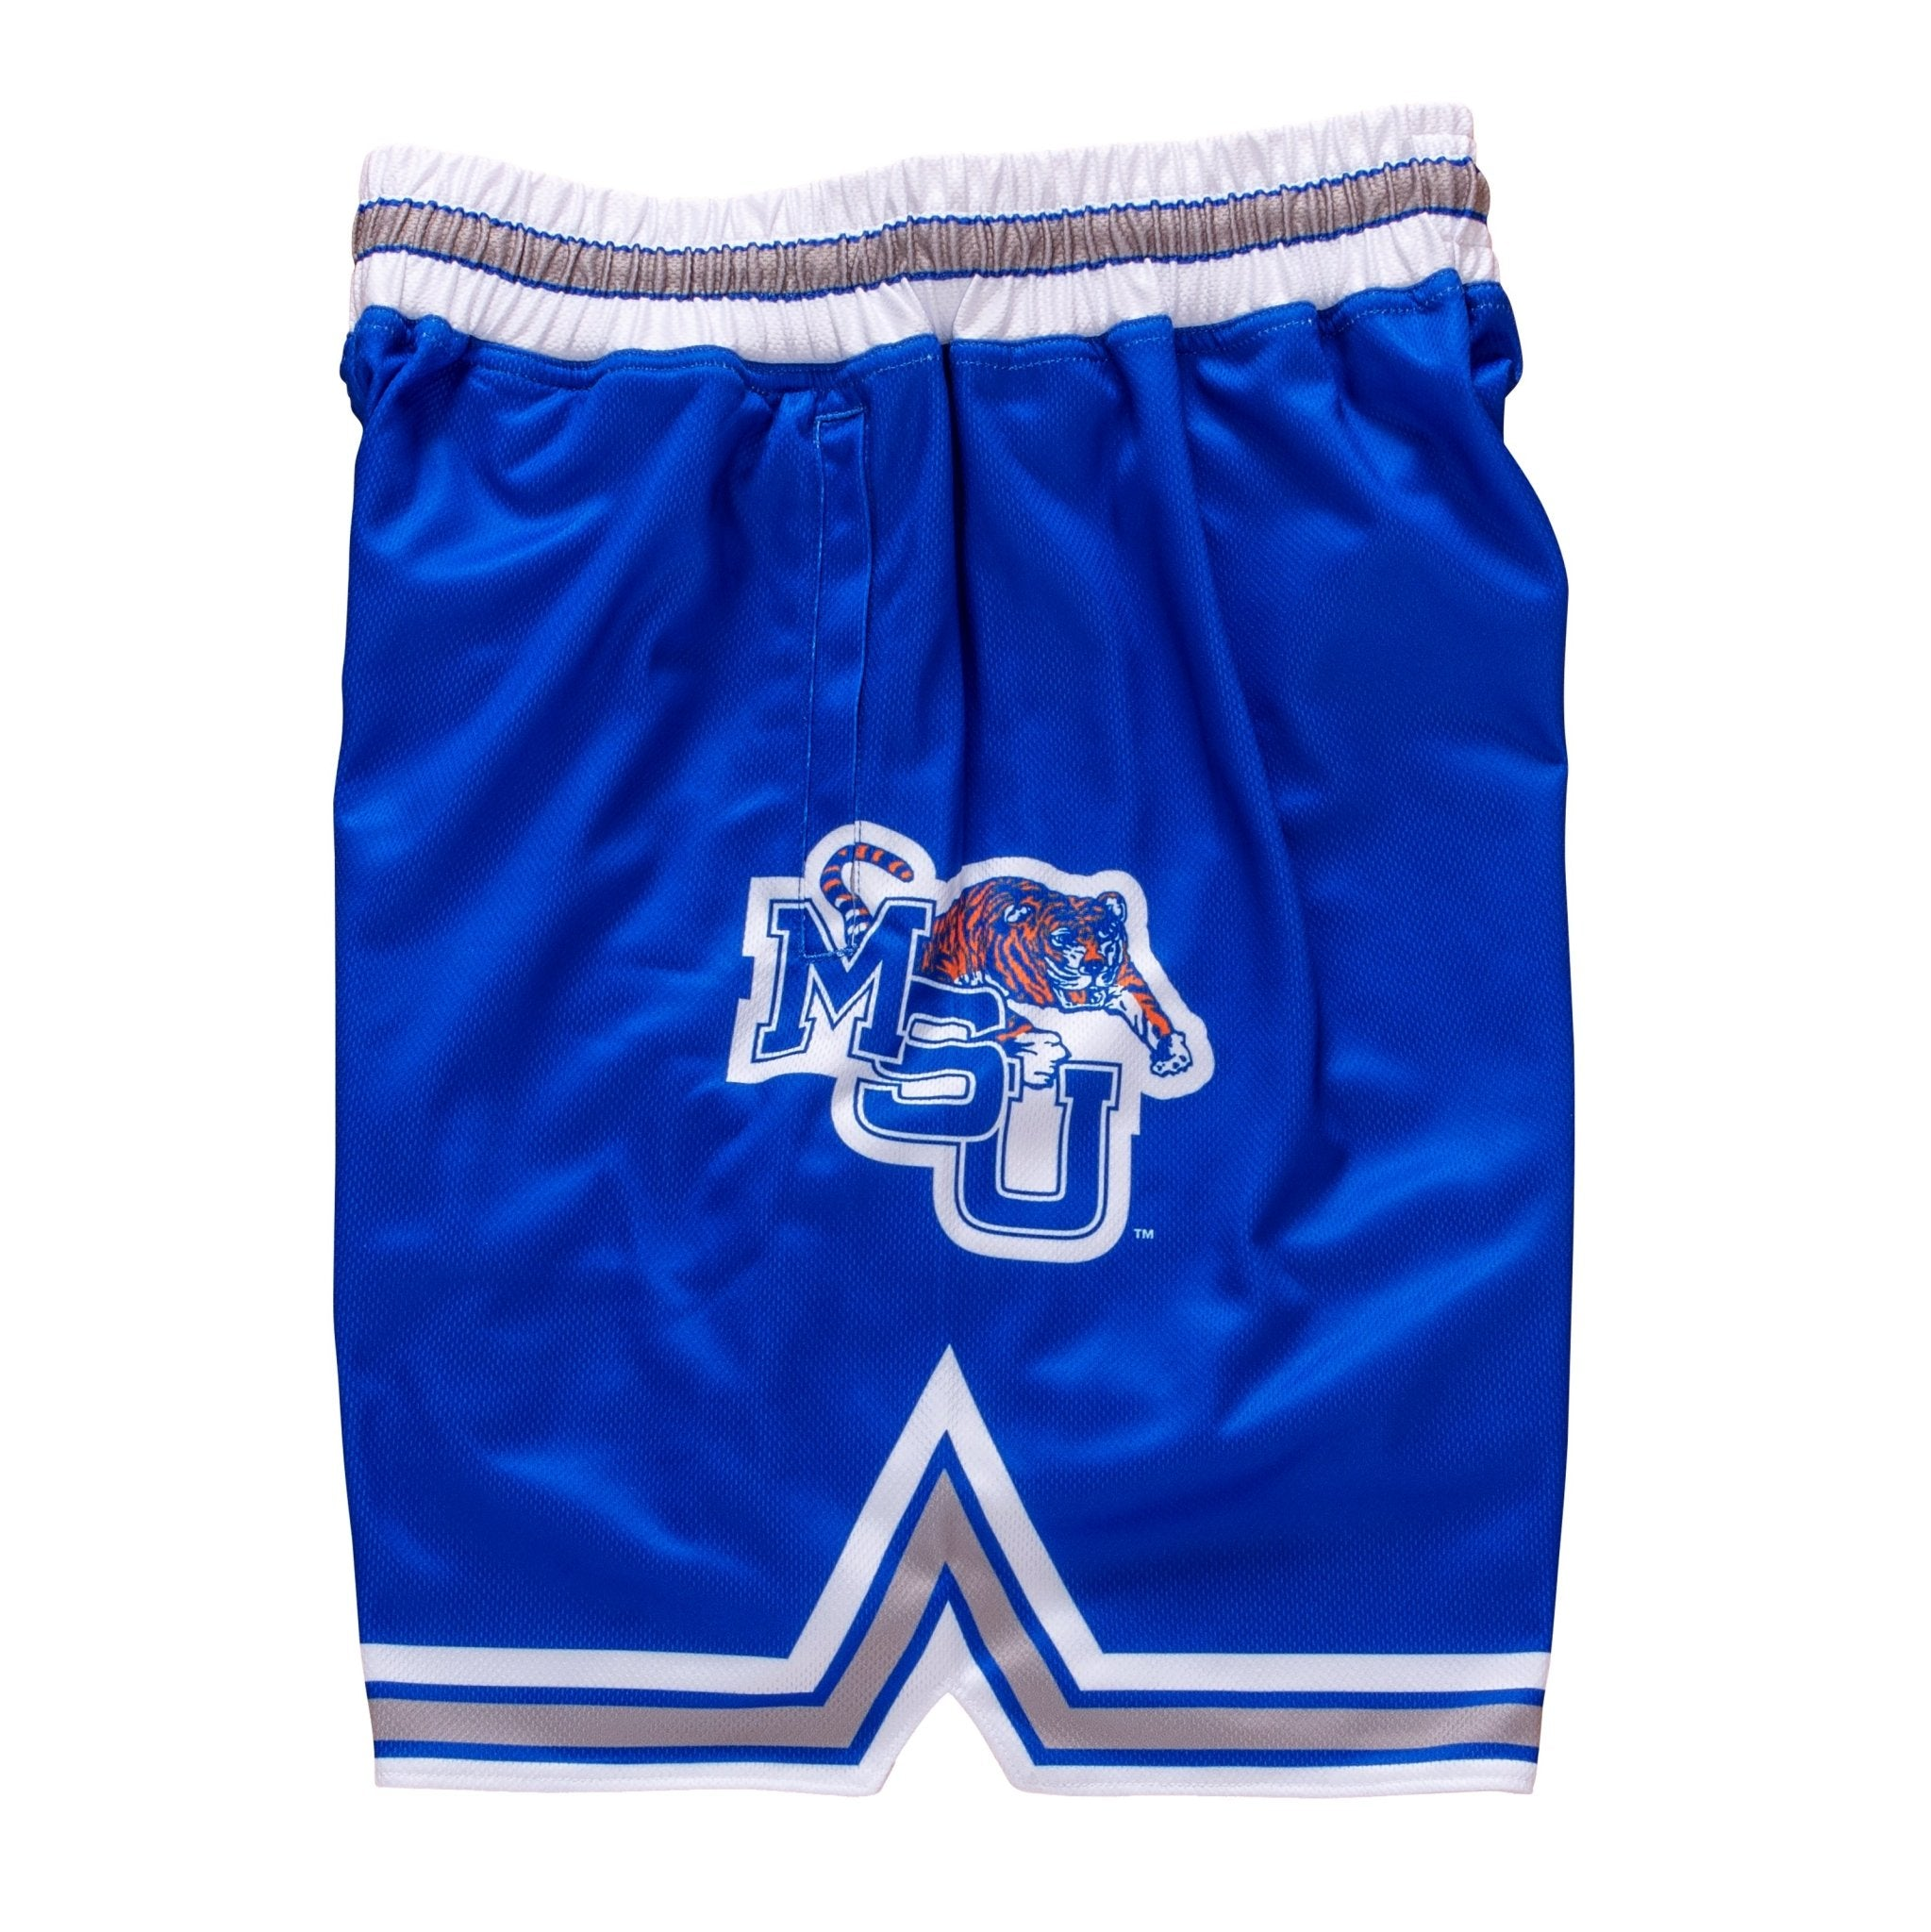 Memphis State 1991-1992 Retro Shorts - SLAM